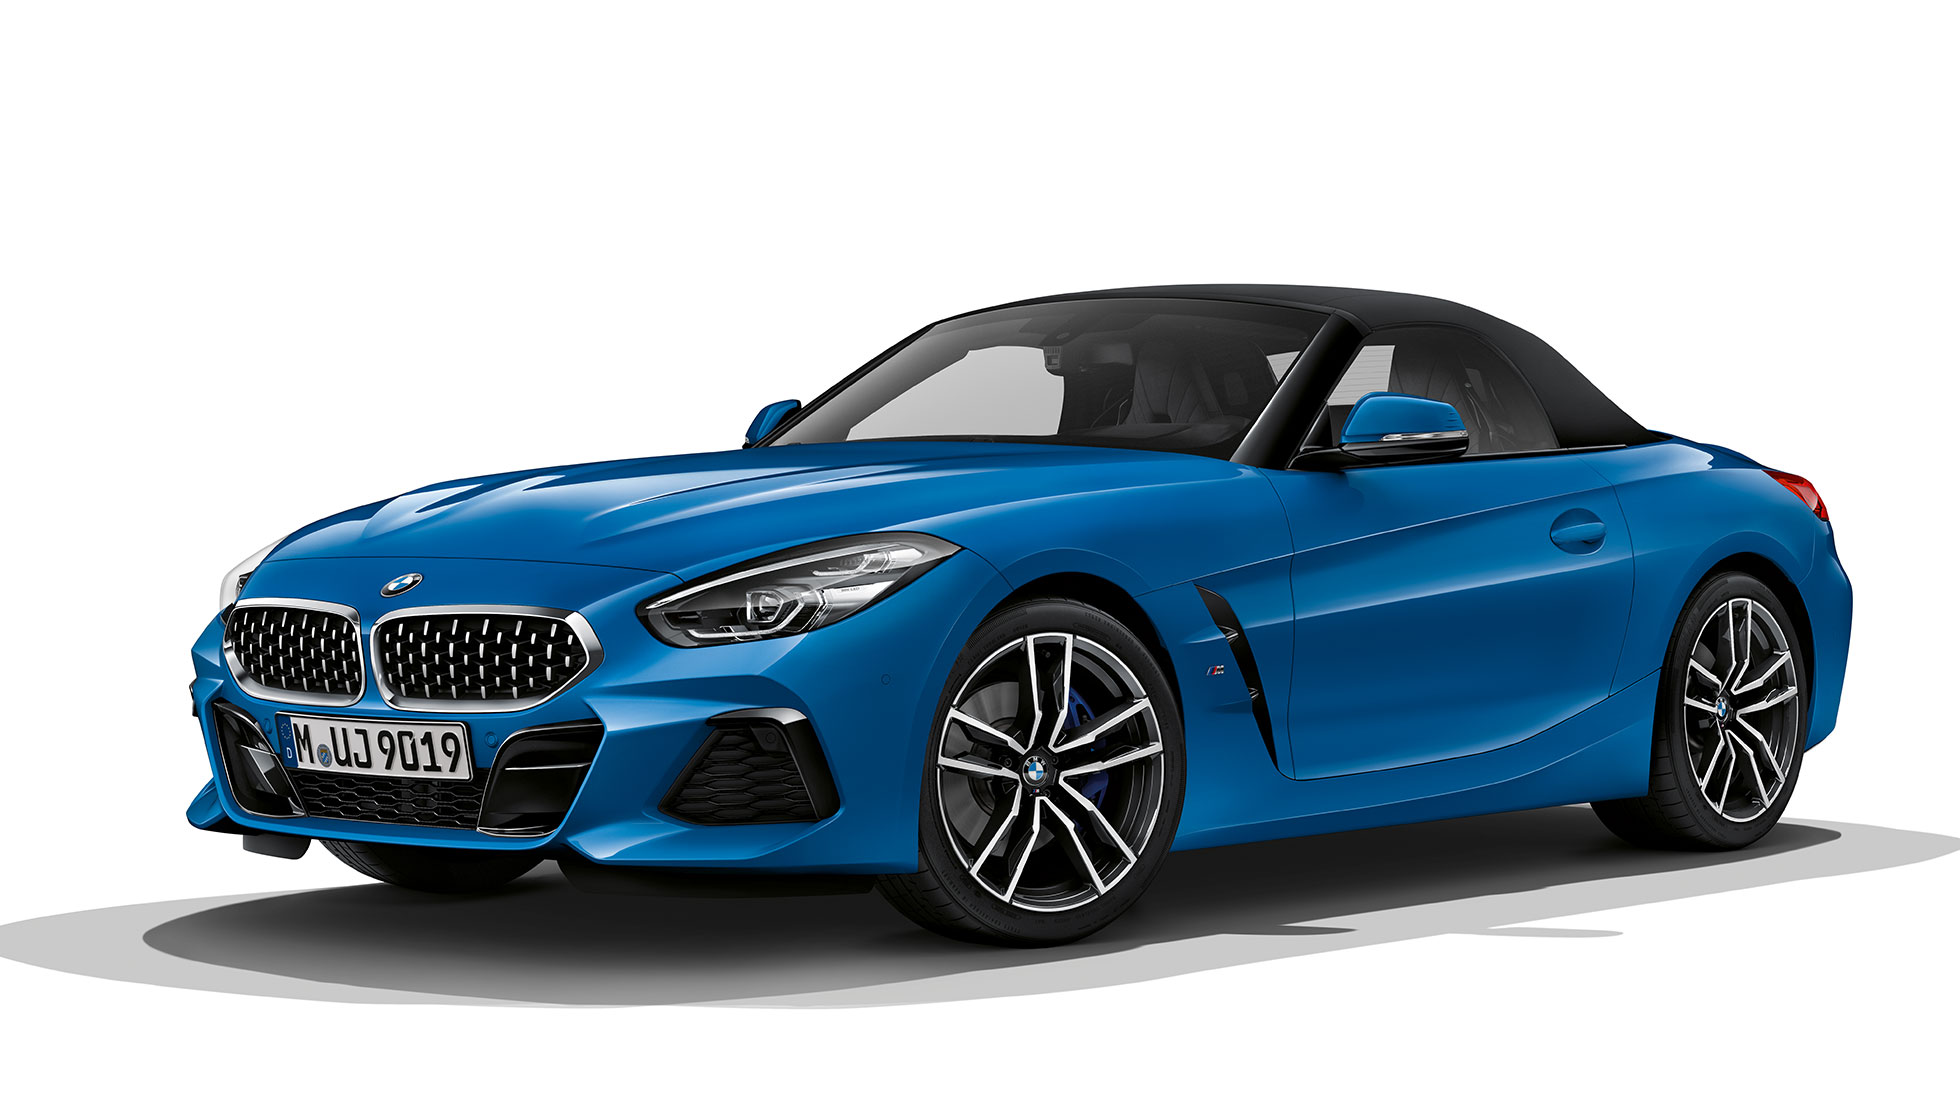 Bmw Z4 Roadster Information And Details Bmw Eg Com